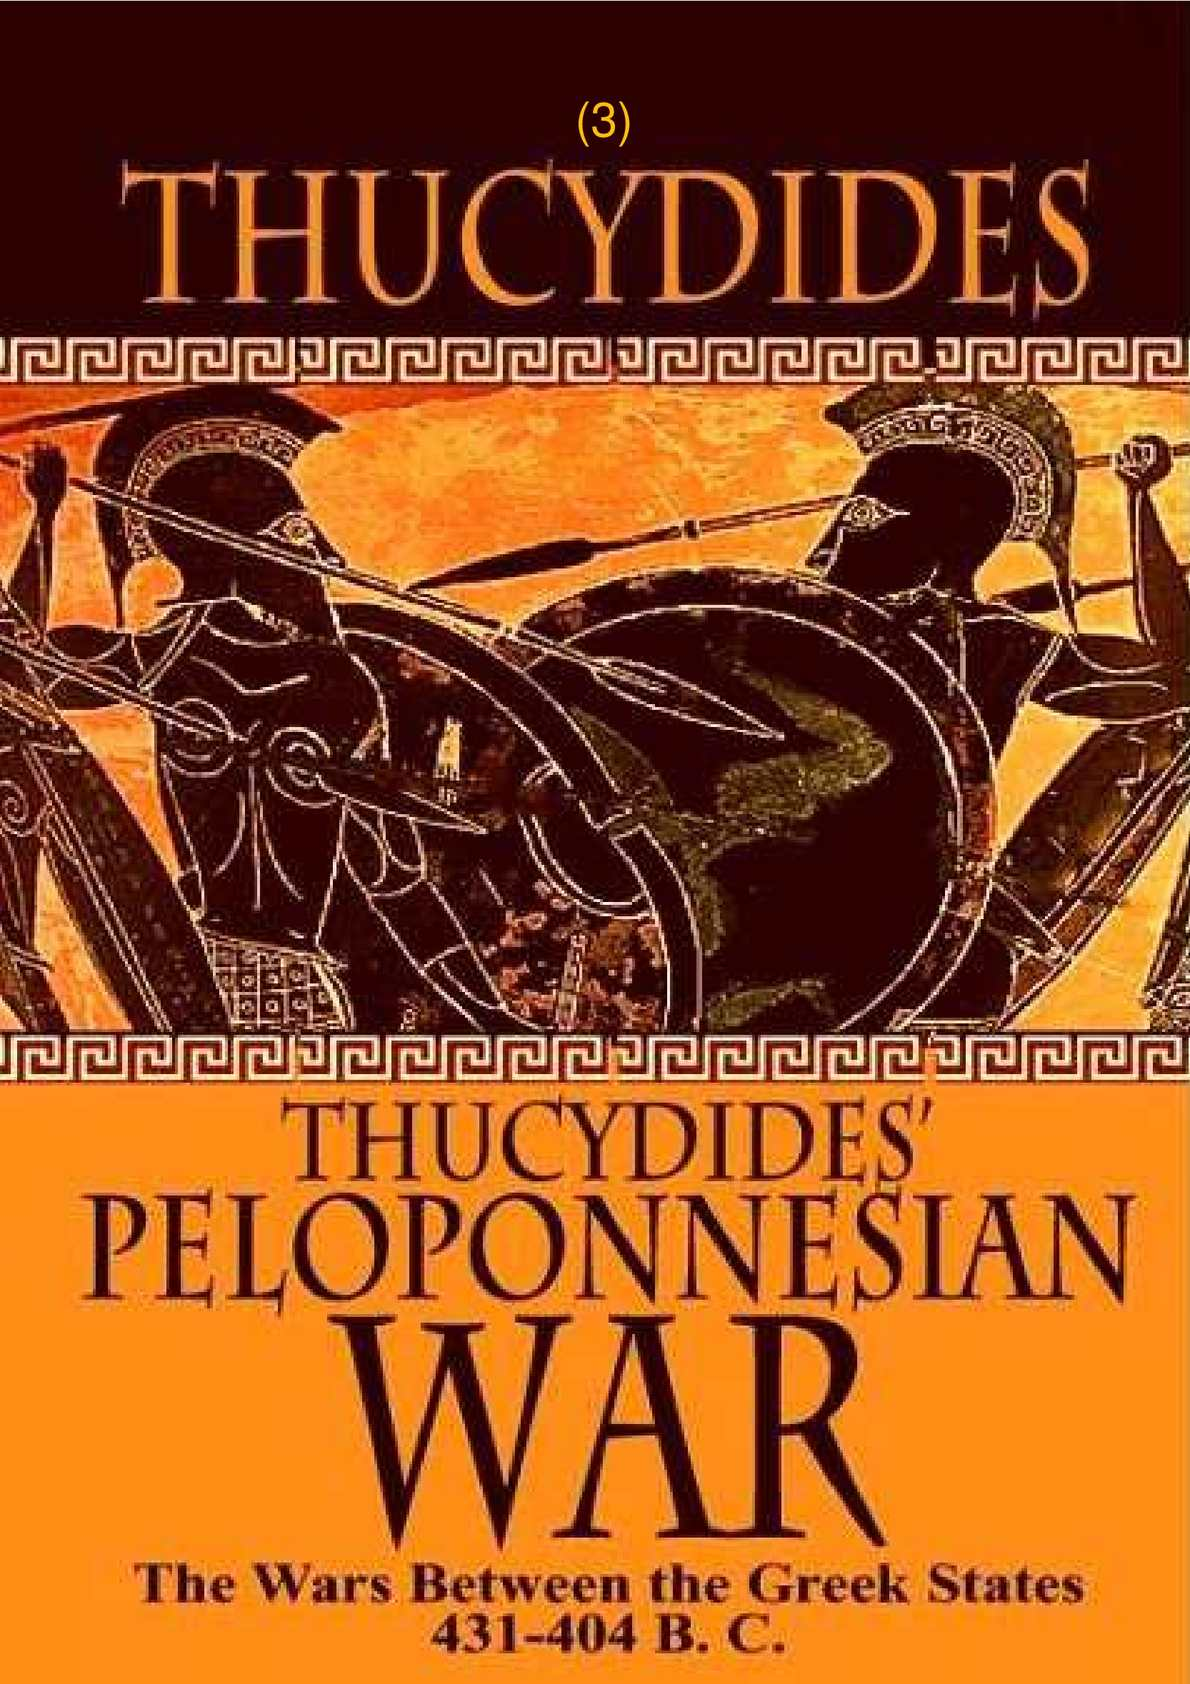 thycydides and the peloponnesian war essay